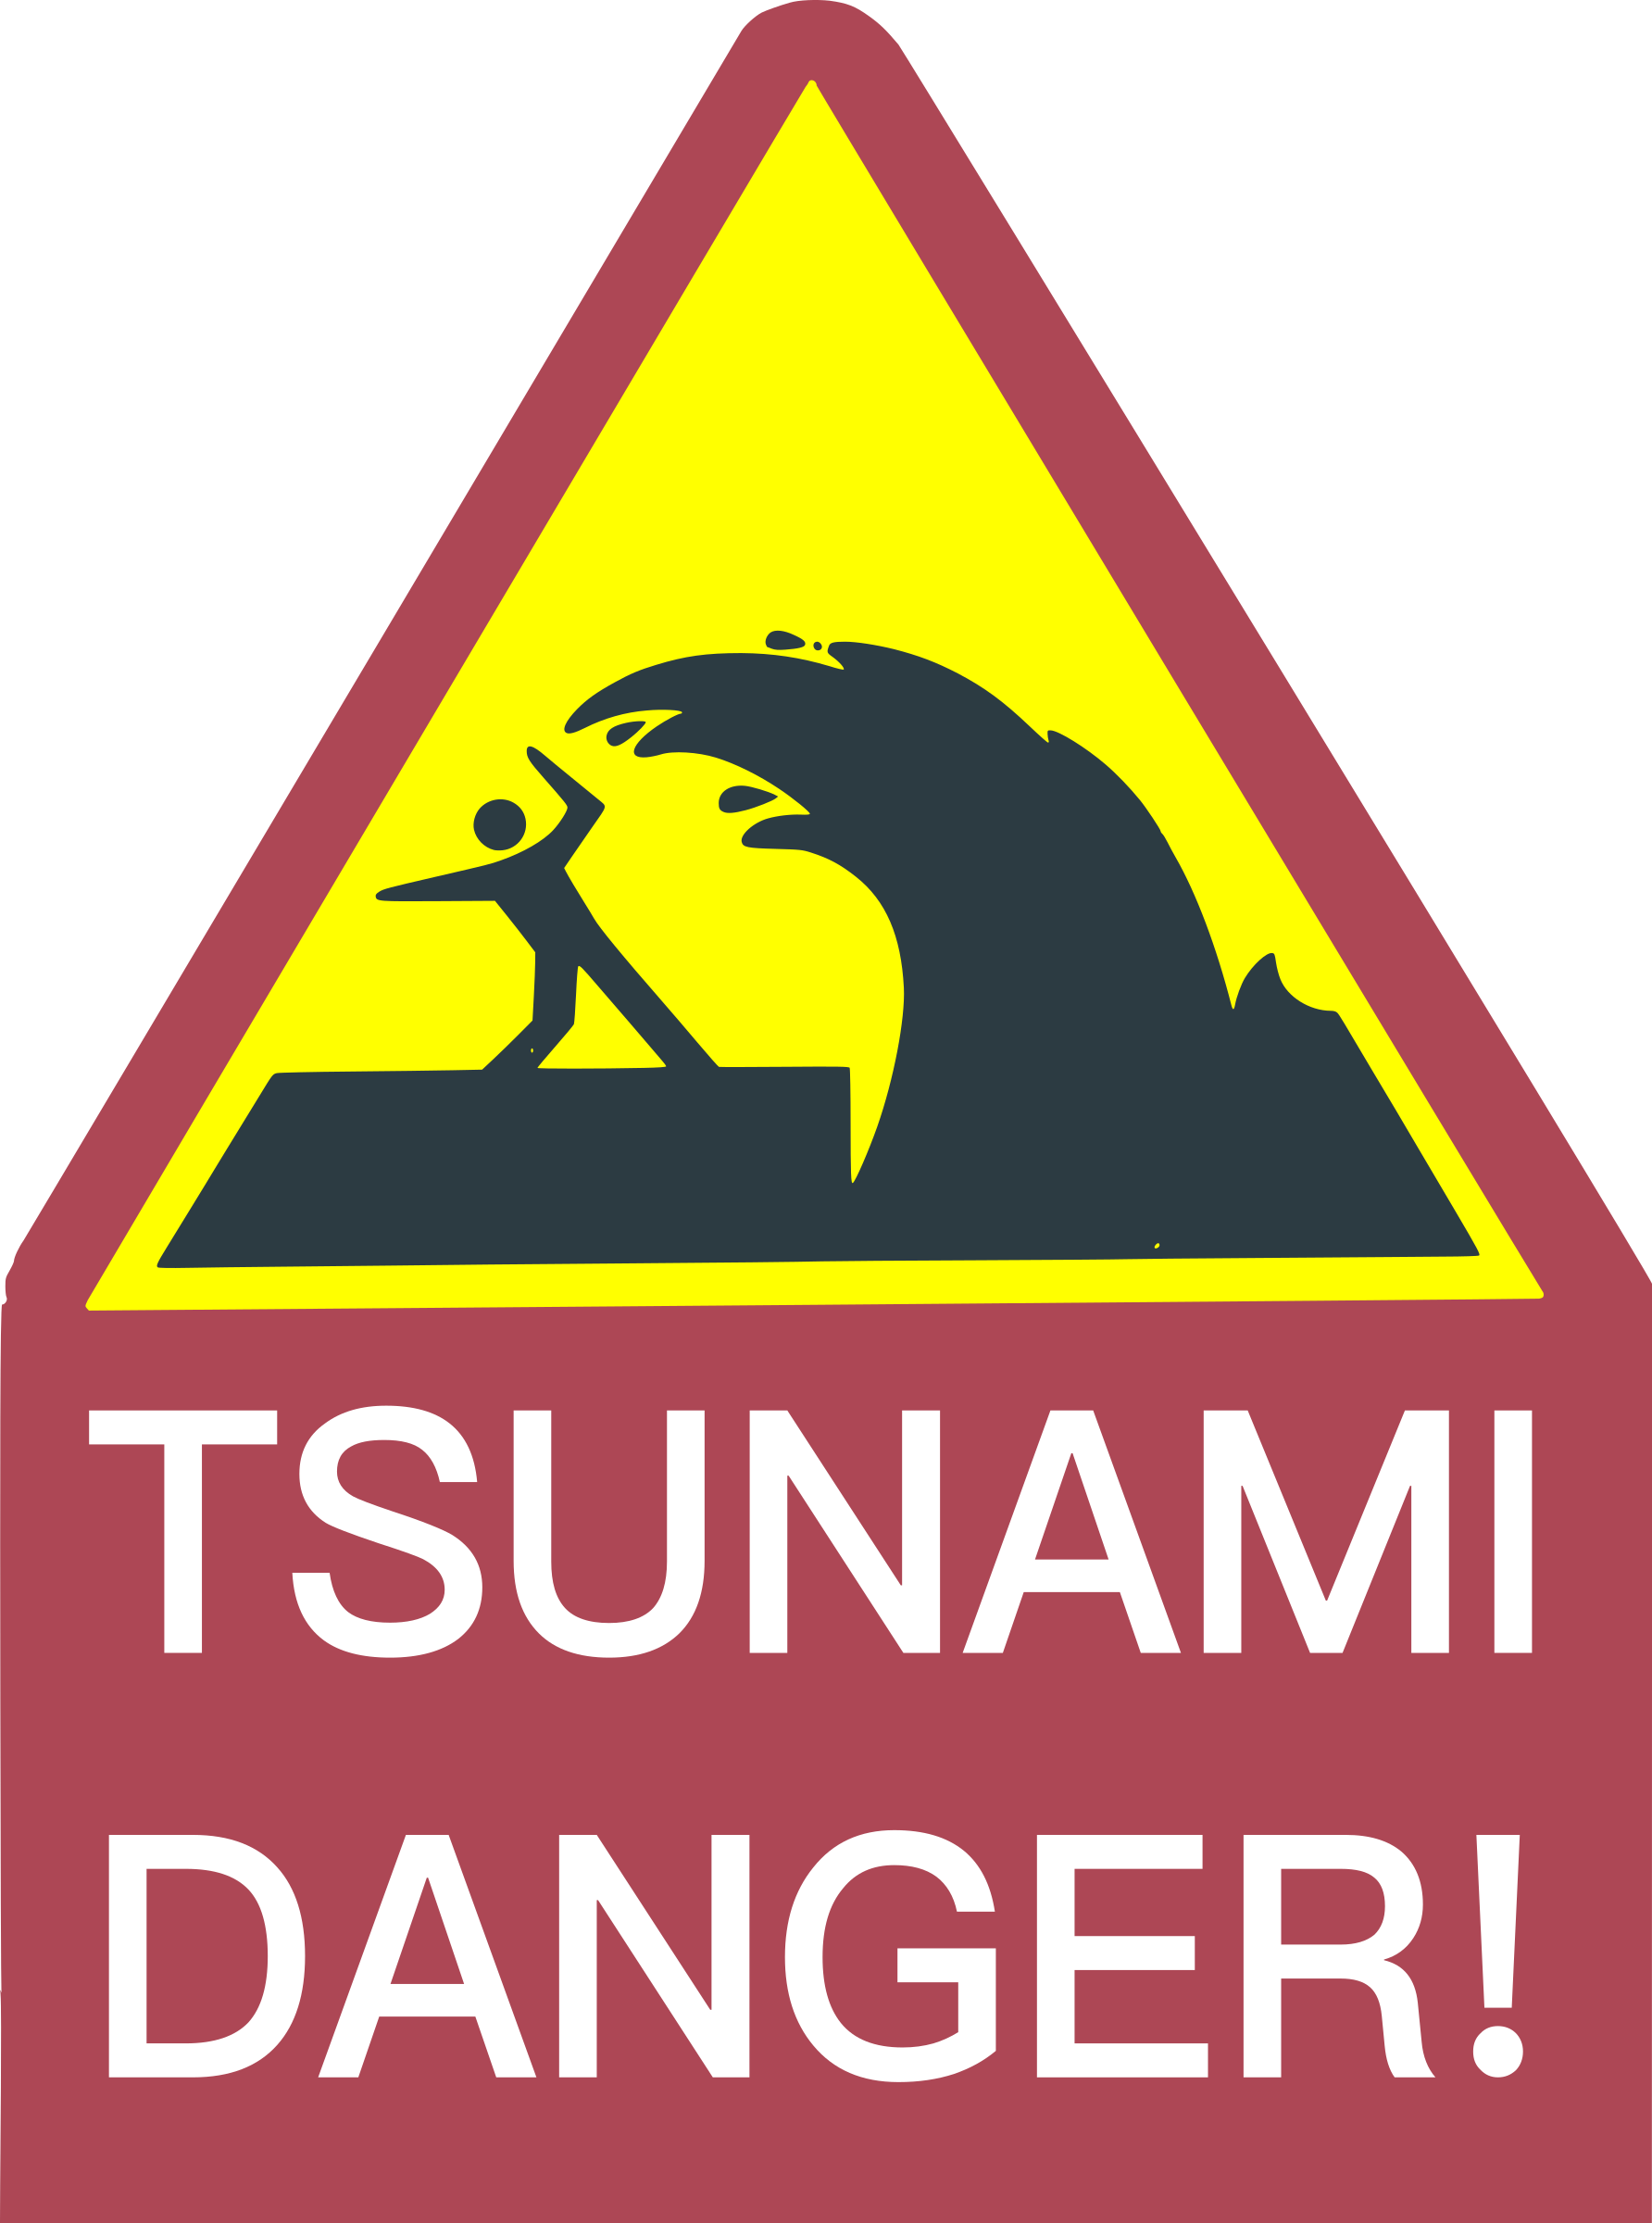 Waves clipart tidal wave. Tsunami danger sign big